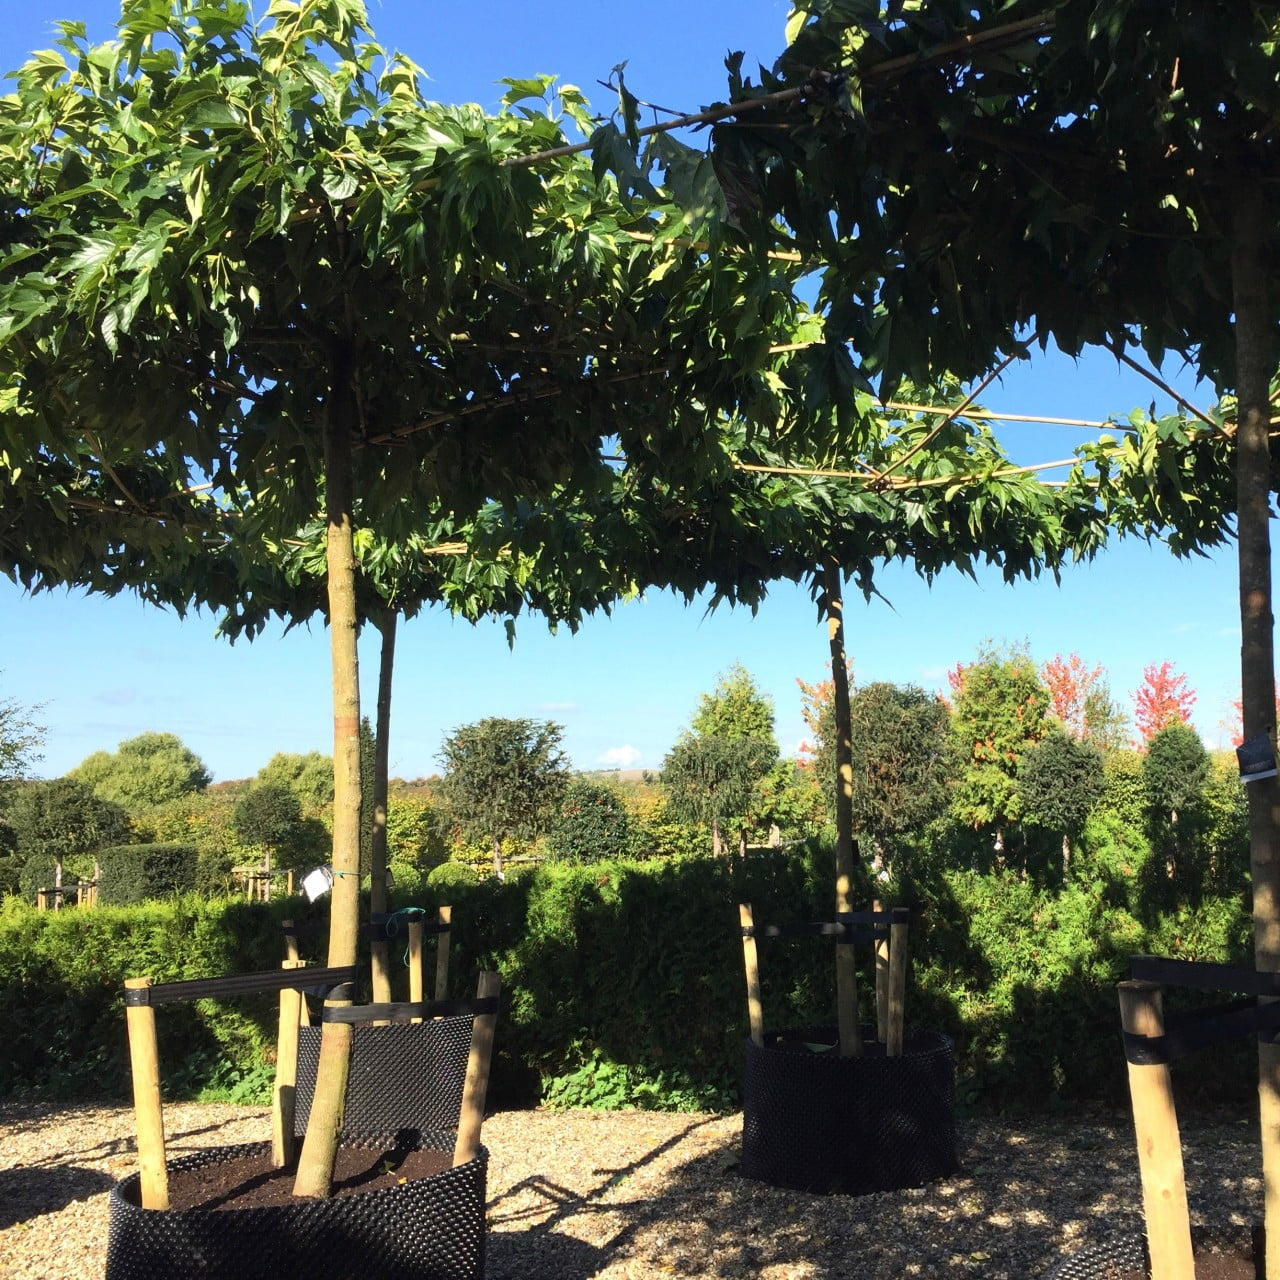 These are beautiful roof trees at the nursery. I use them for shade & they create great structure in a garden